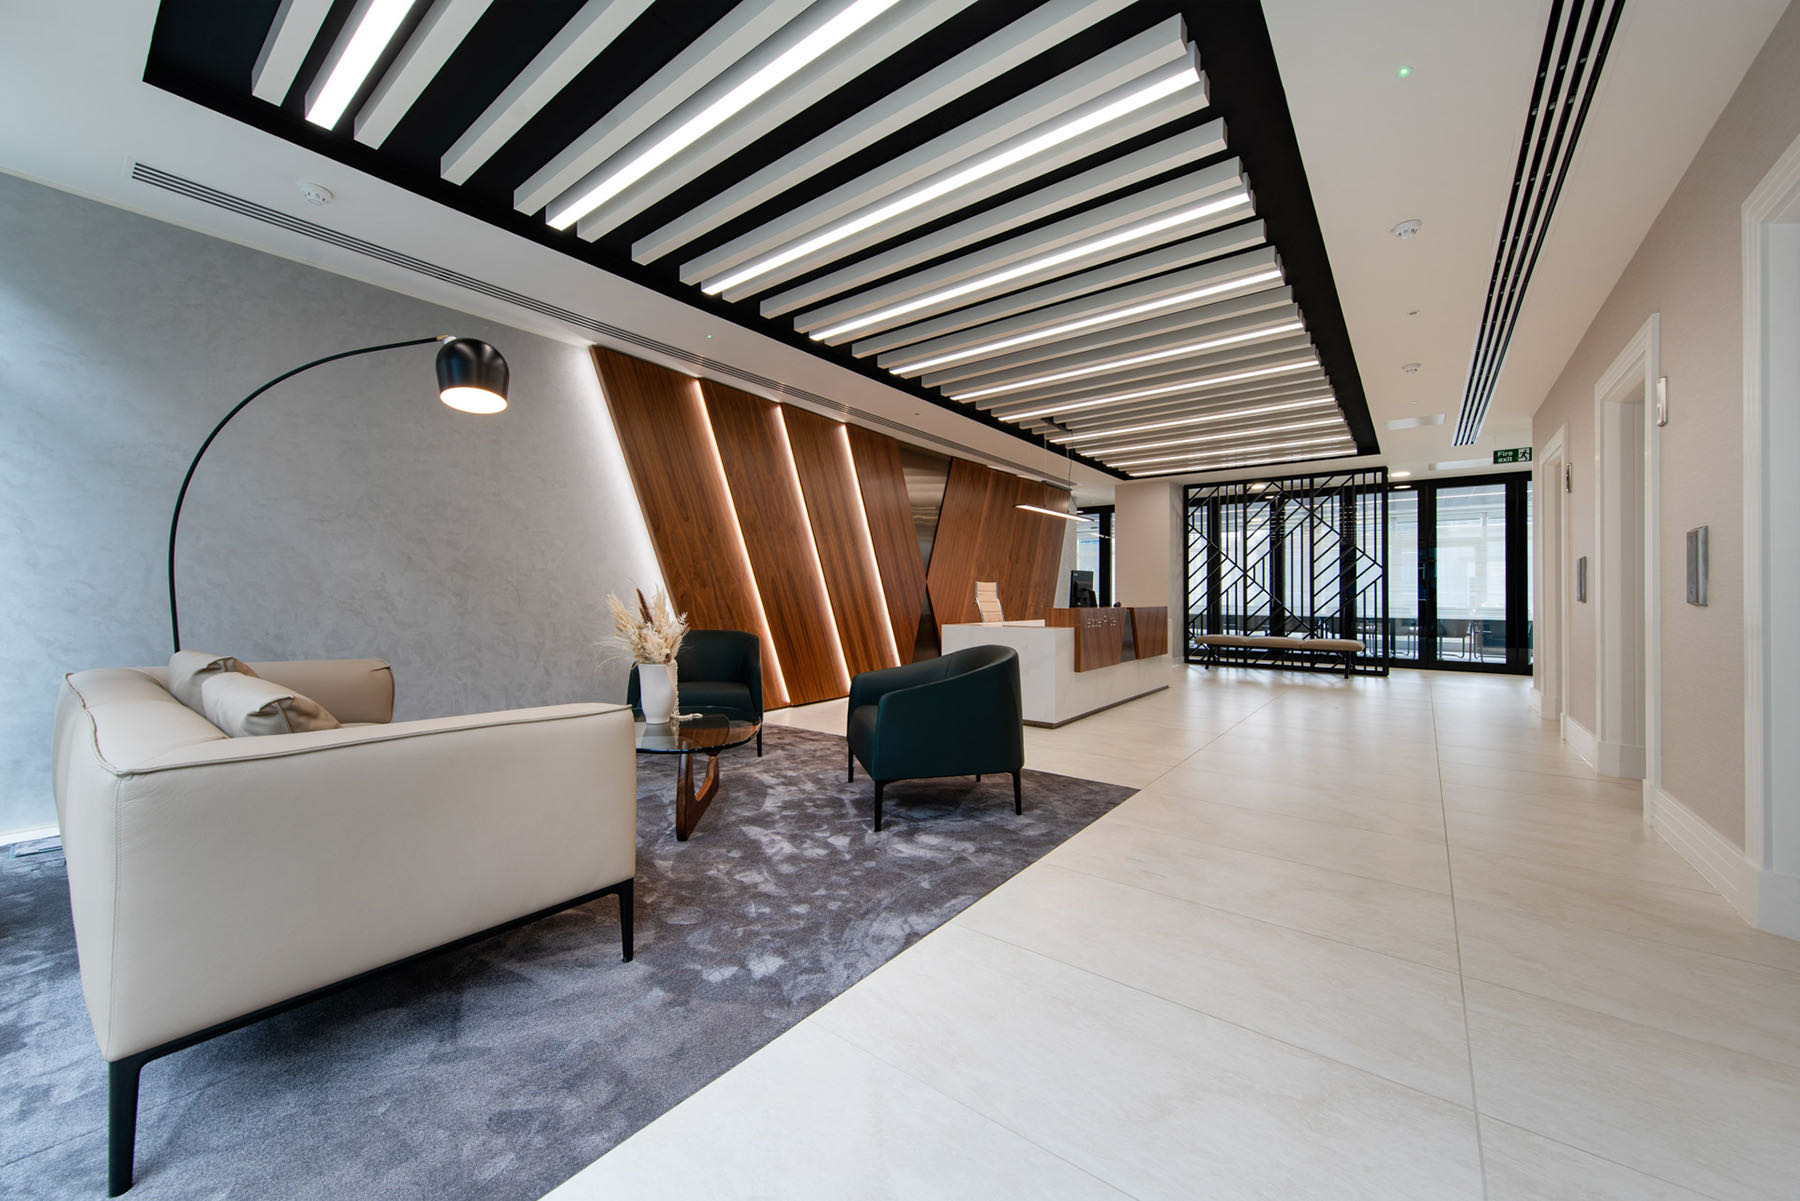 vedder-price-london-office-1